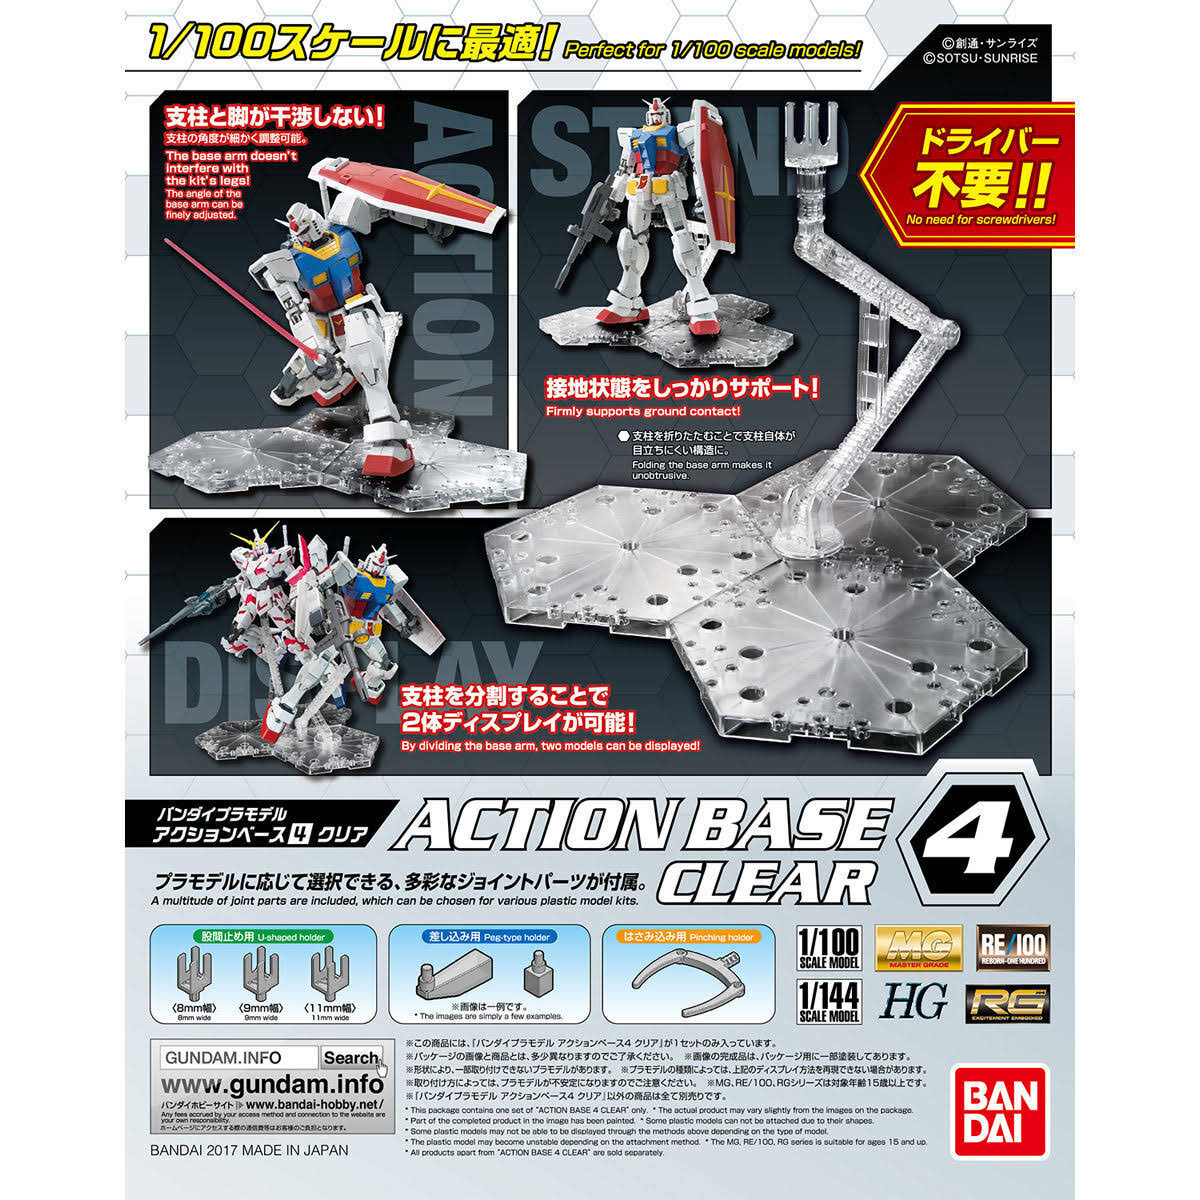 Bandai Action Base - 04, Clear